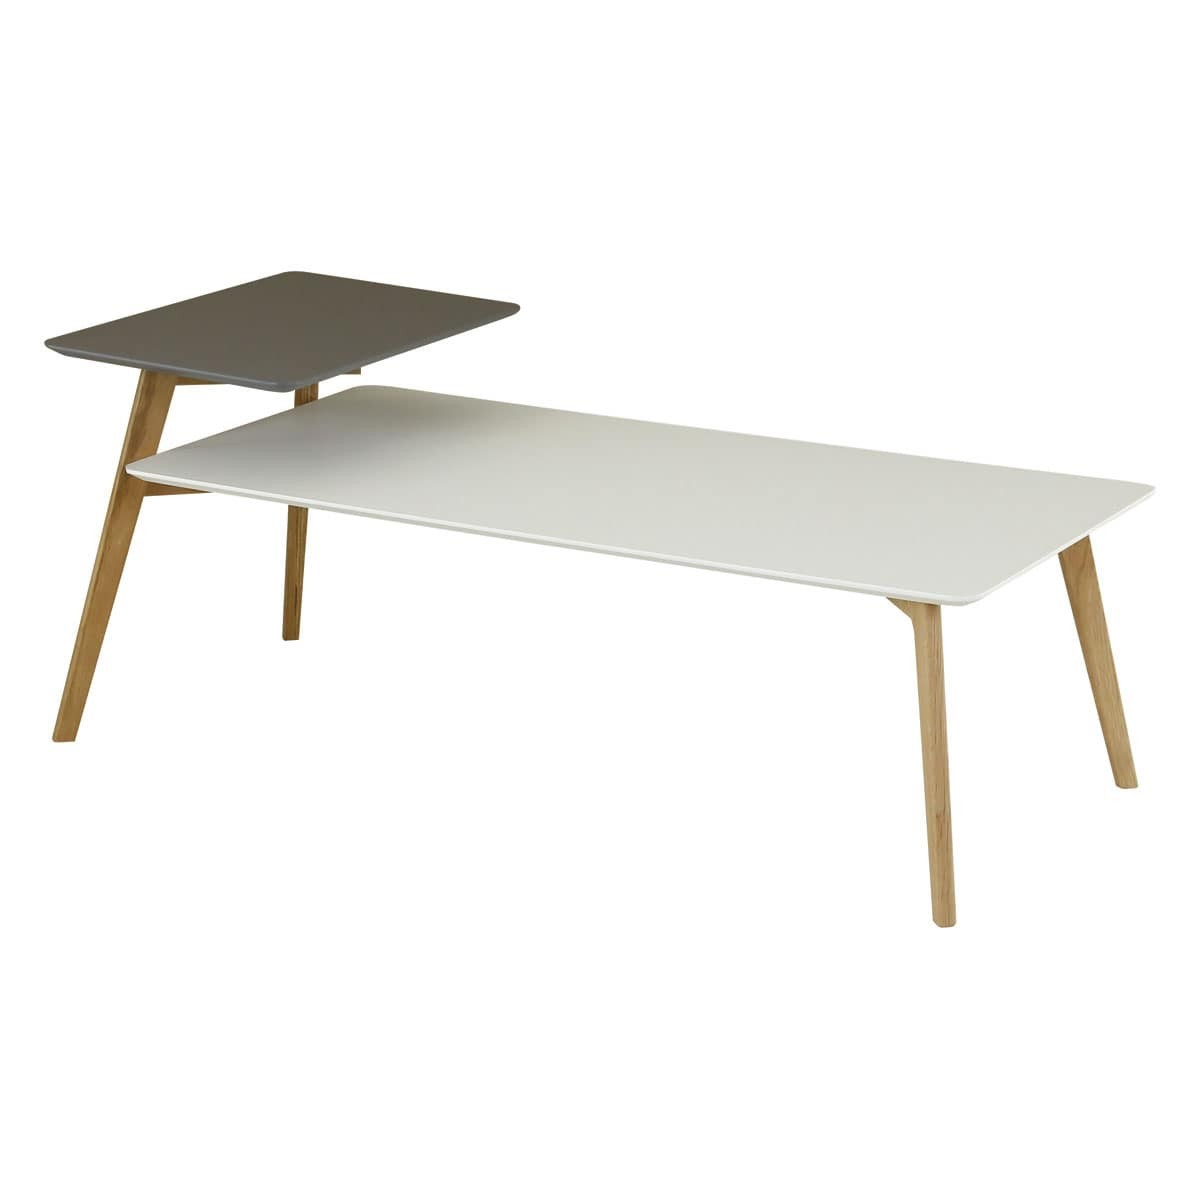 Table basse style scandinave 130 cm double plateaux gris for Table basse scandinave gris et blanc